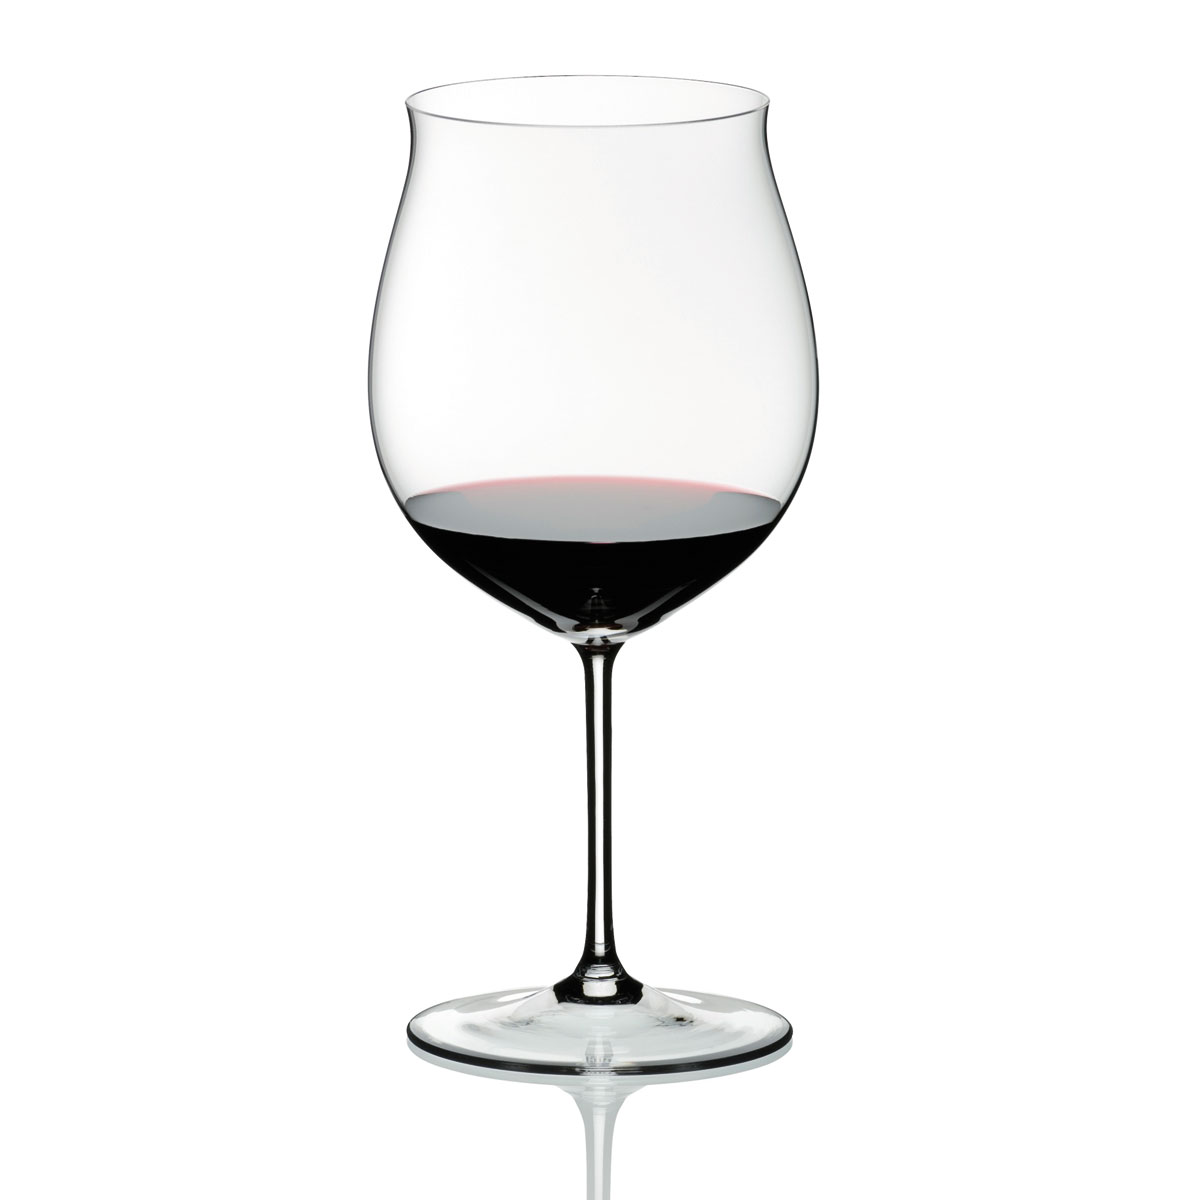 Riedel Sommeliers, Hand Made Grand Cru Burgundy Wine Glass, Single